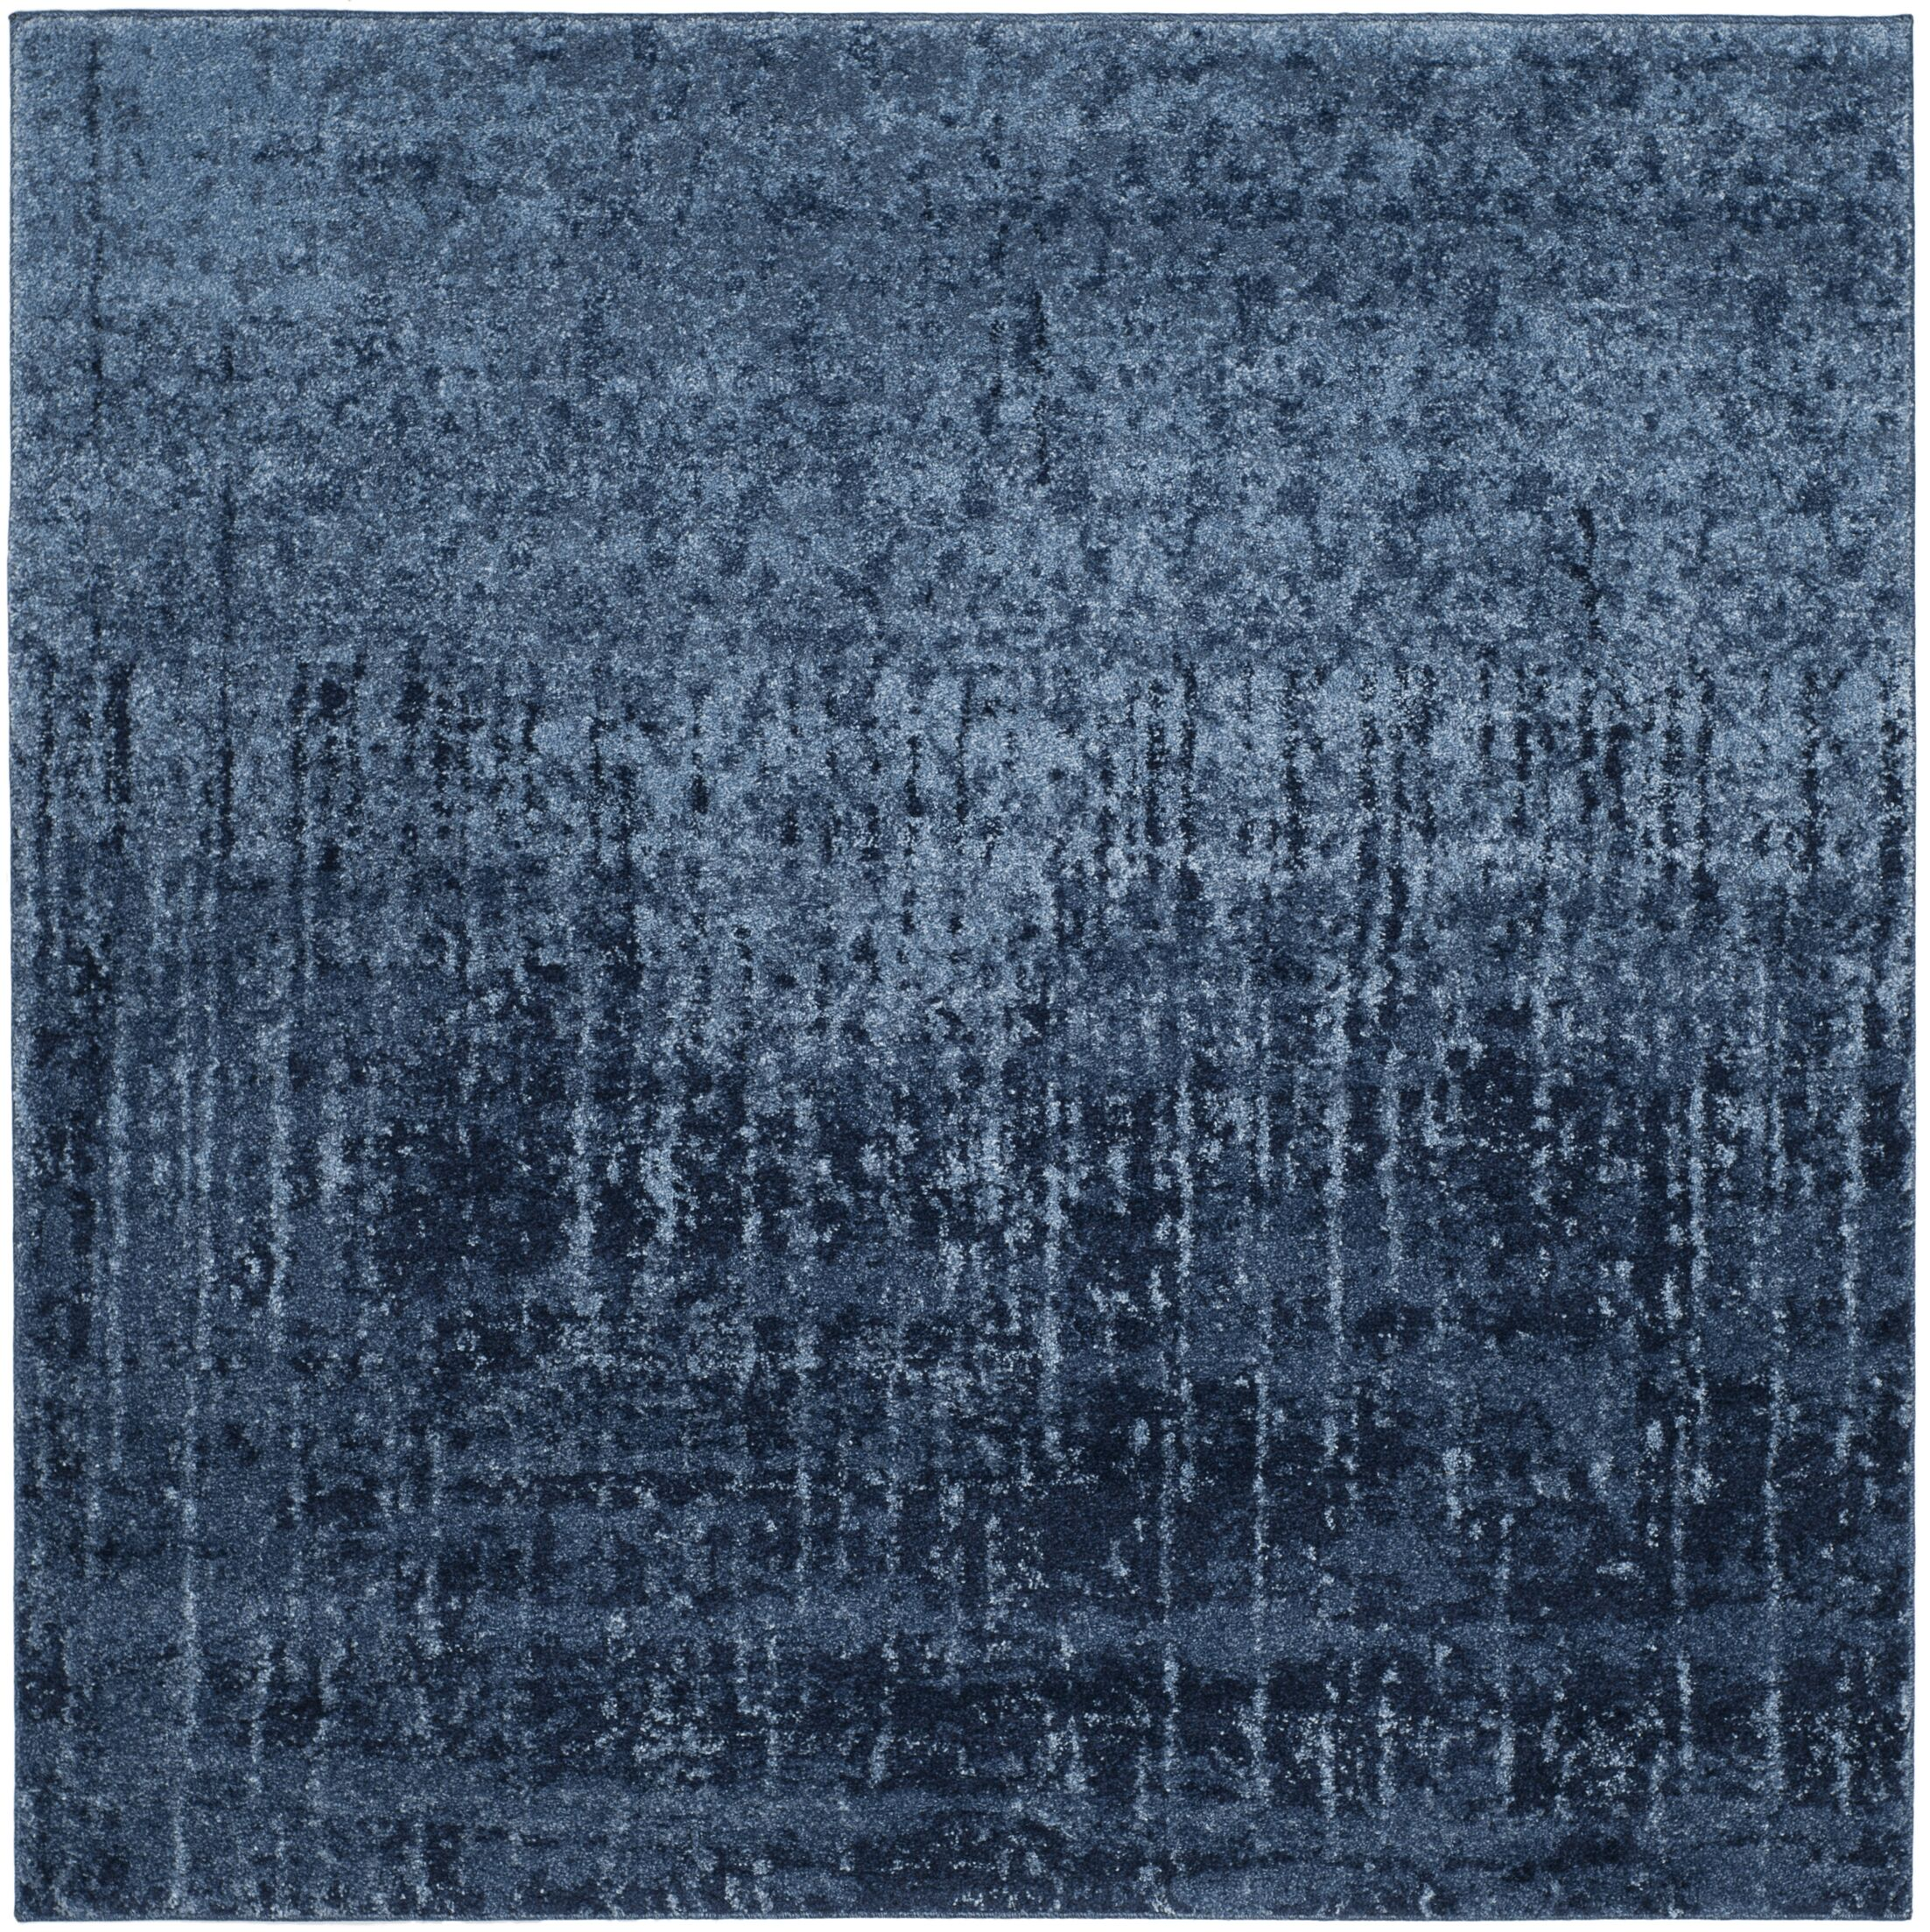 Tenth Avenue Light Blue / Blue Area Rug Rug Size: Square 8' x 8'